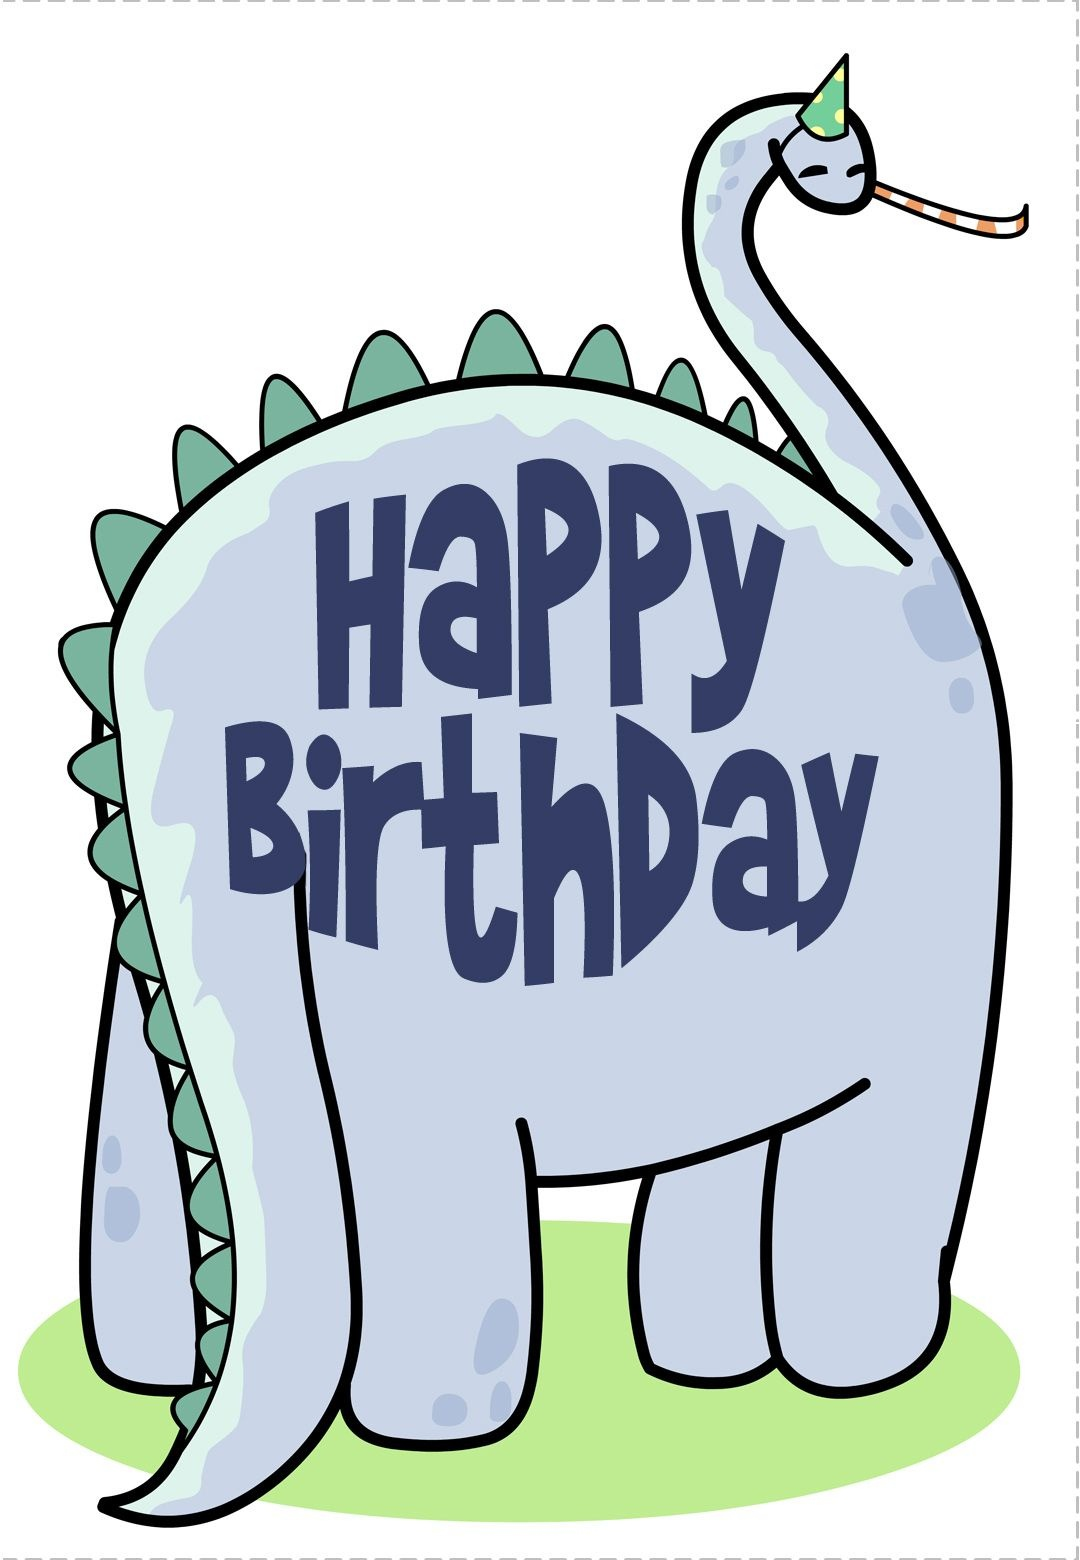 Free Printable Dinosaur Greeting Card. This Website Awesome For - Free Printable Money Cards For Birthdays